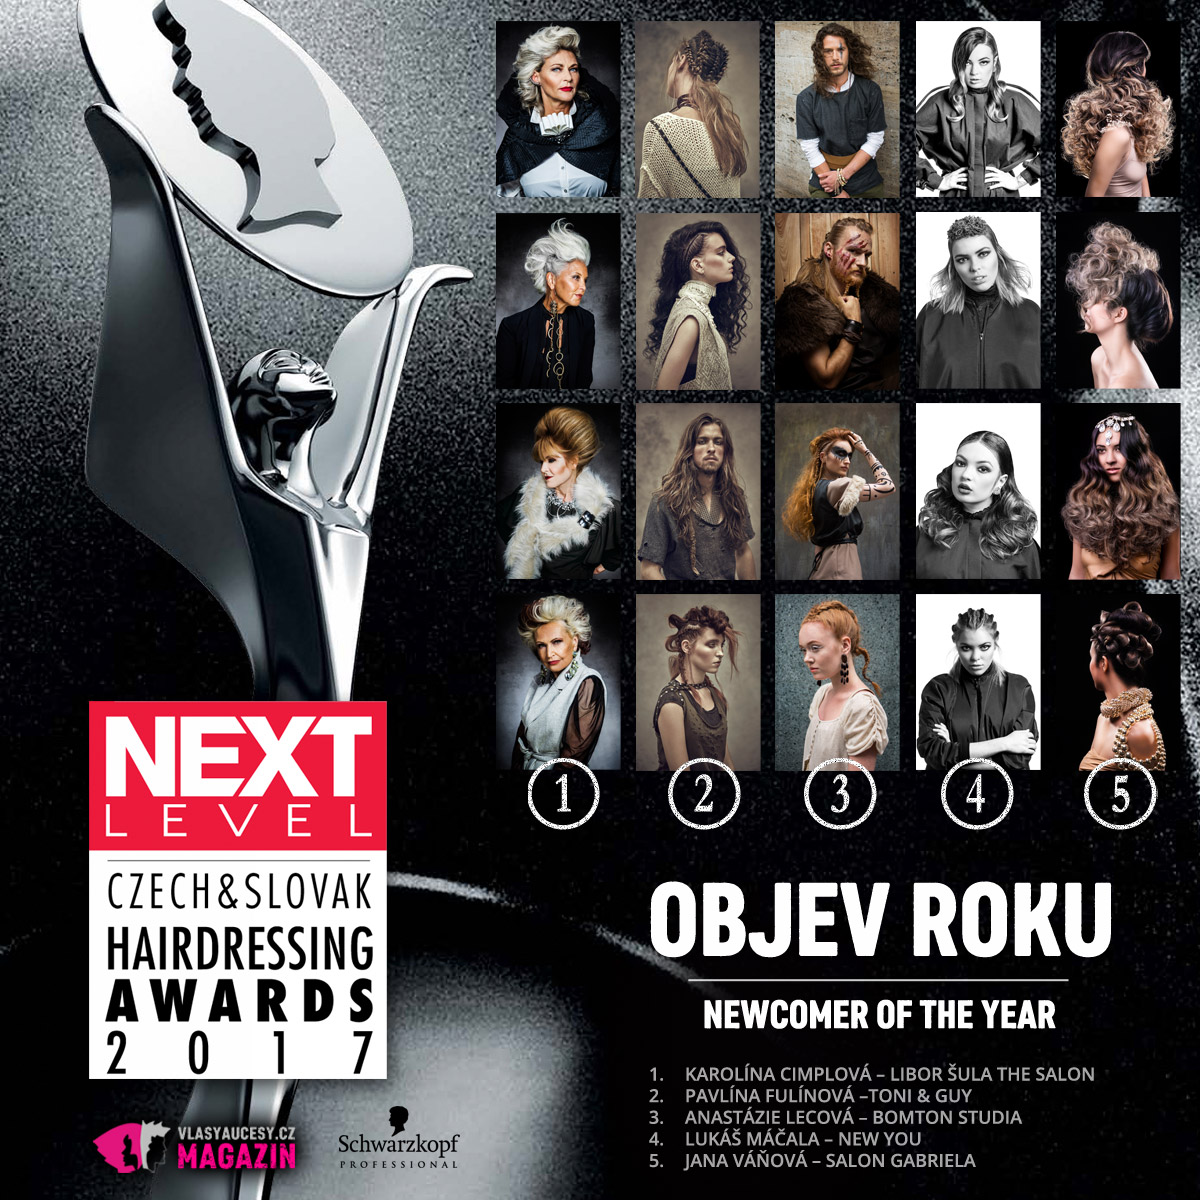 Czech&Slovak Hairdressing Awards 2017 – kategorie Objev roku / Newcomer of the Year.